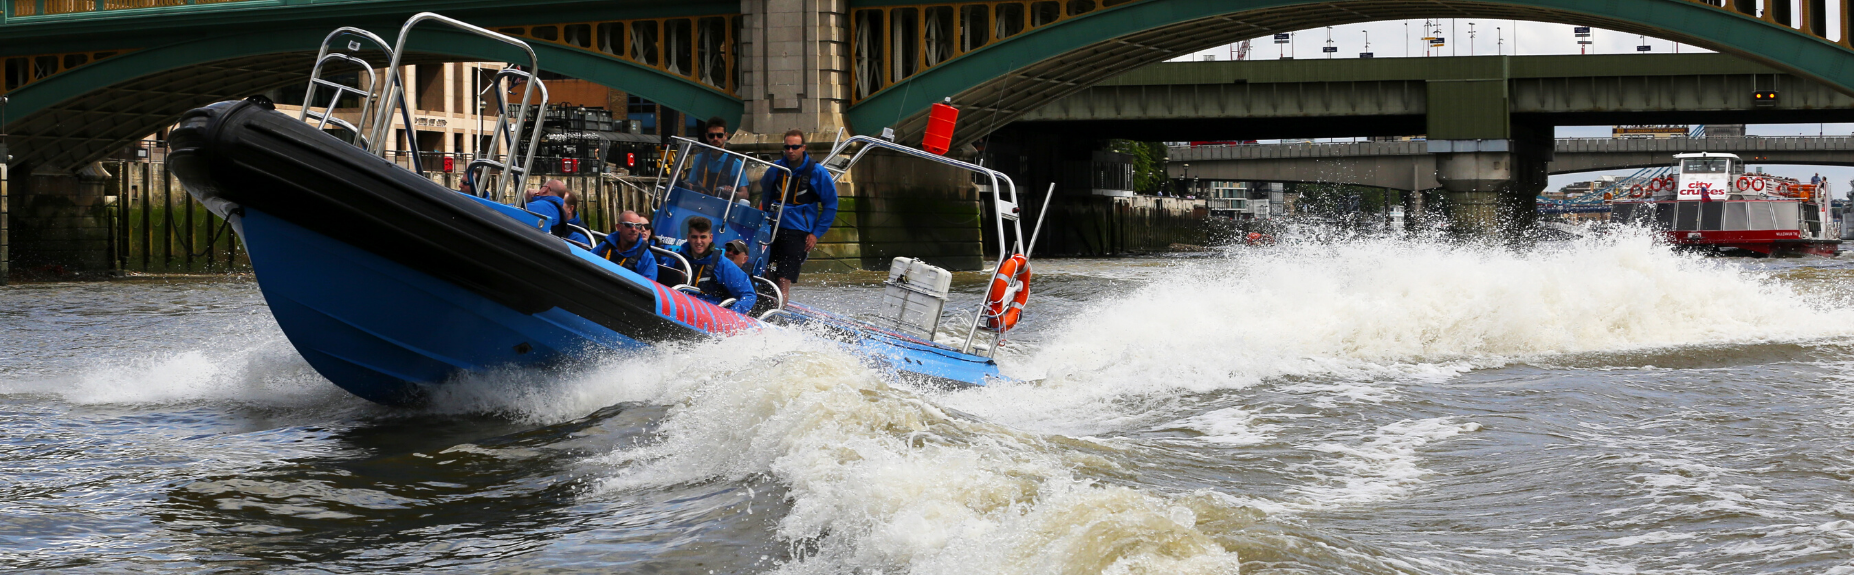 most-fun-thames-speedboat